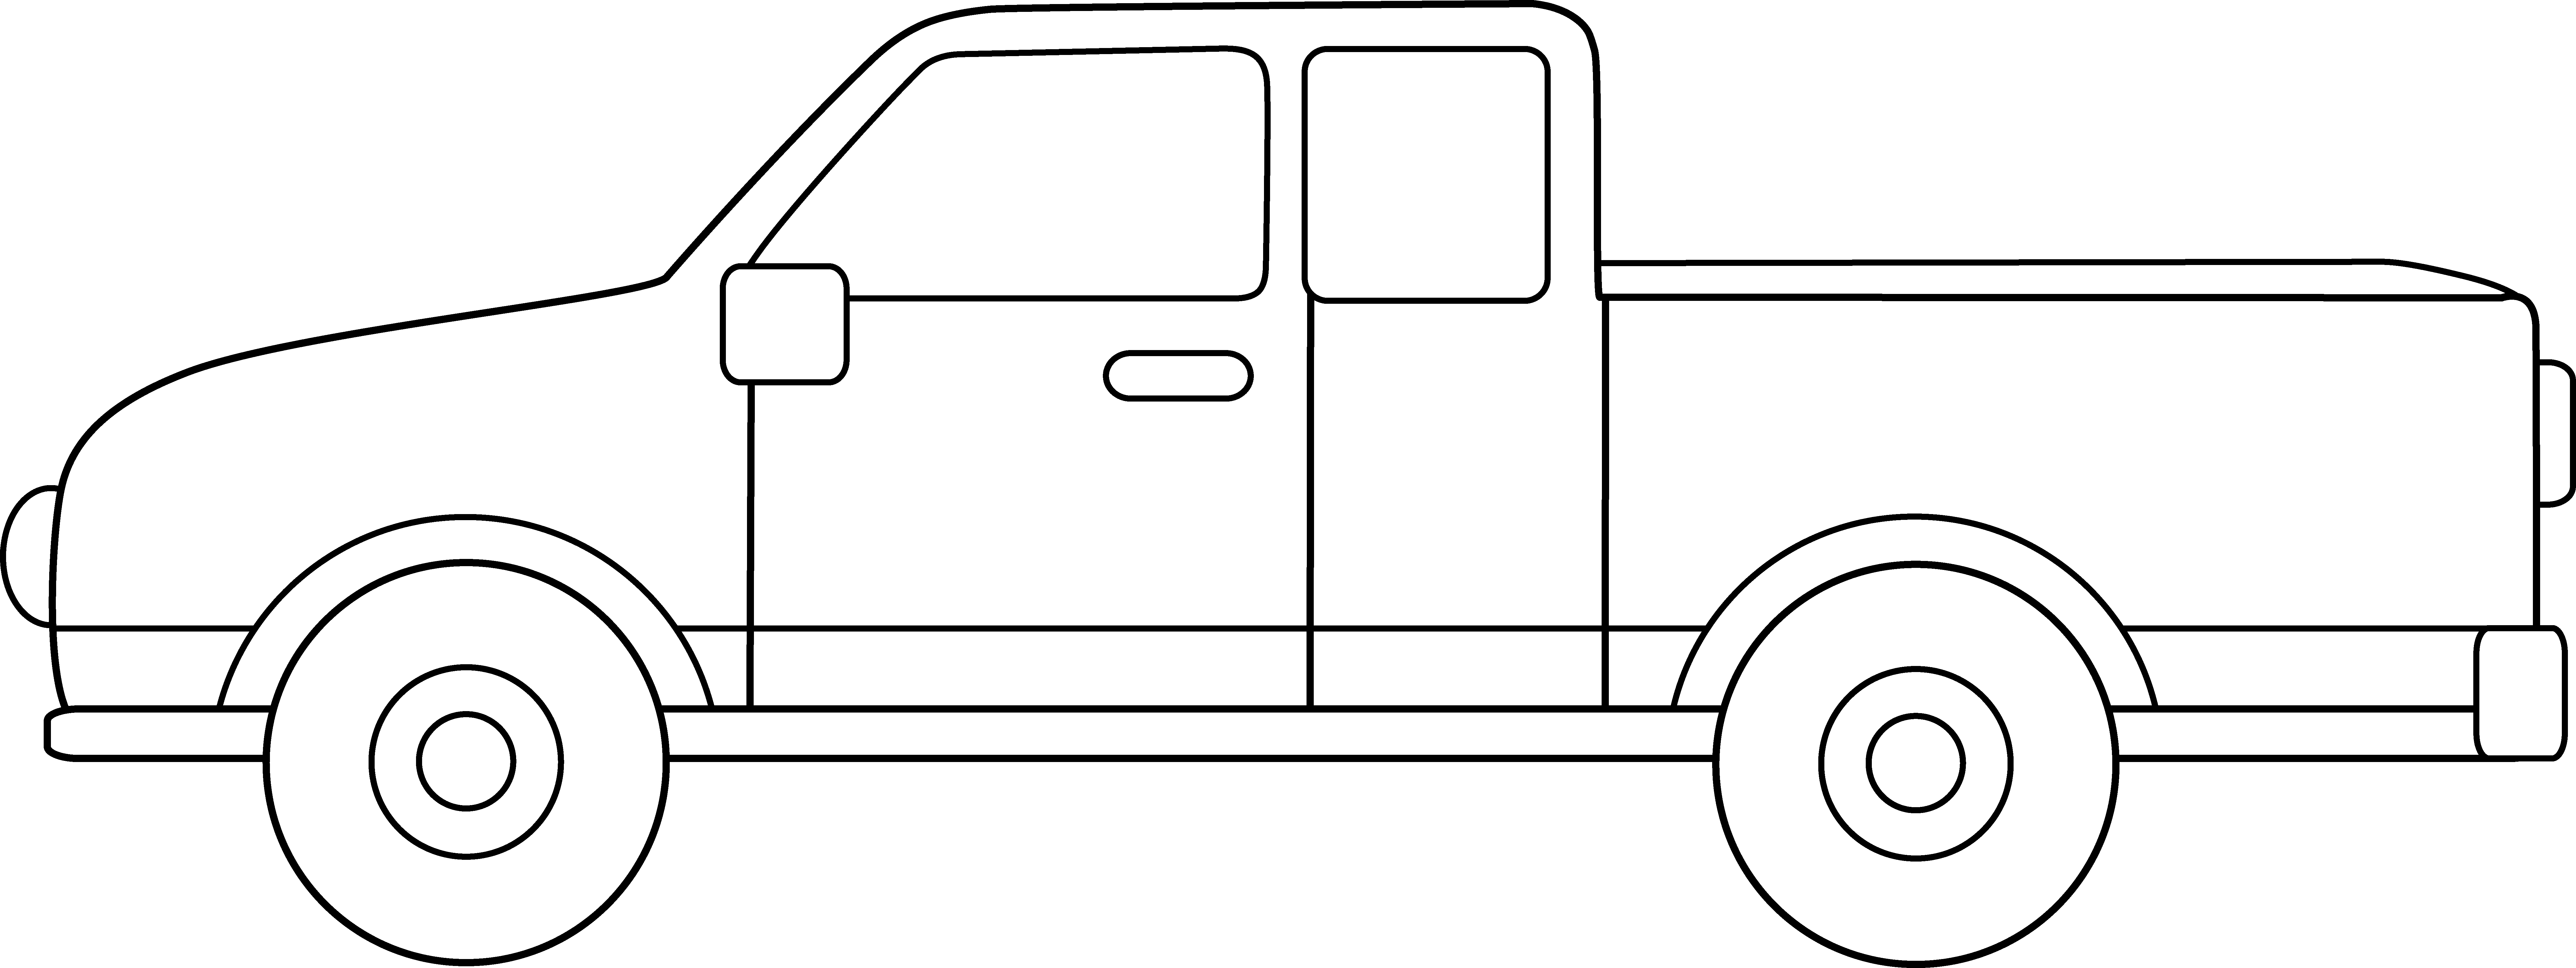 Pick up house clipart picture transparent 28+ Collection of Pickup Truck Clipart Outline | High quality, free ... picture transparent